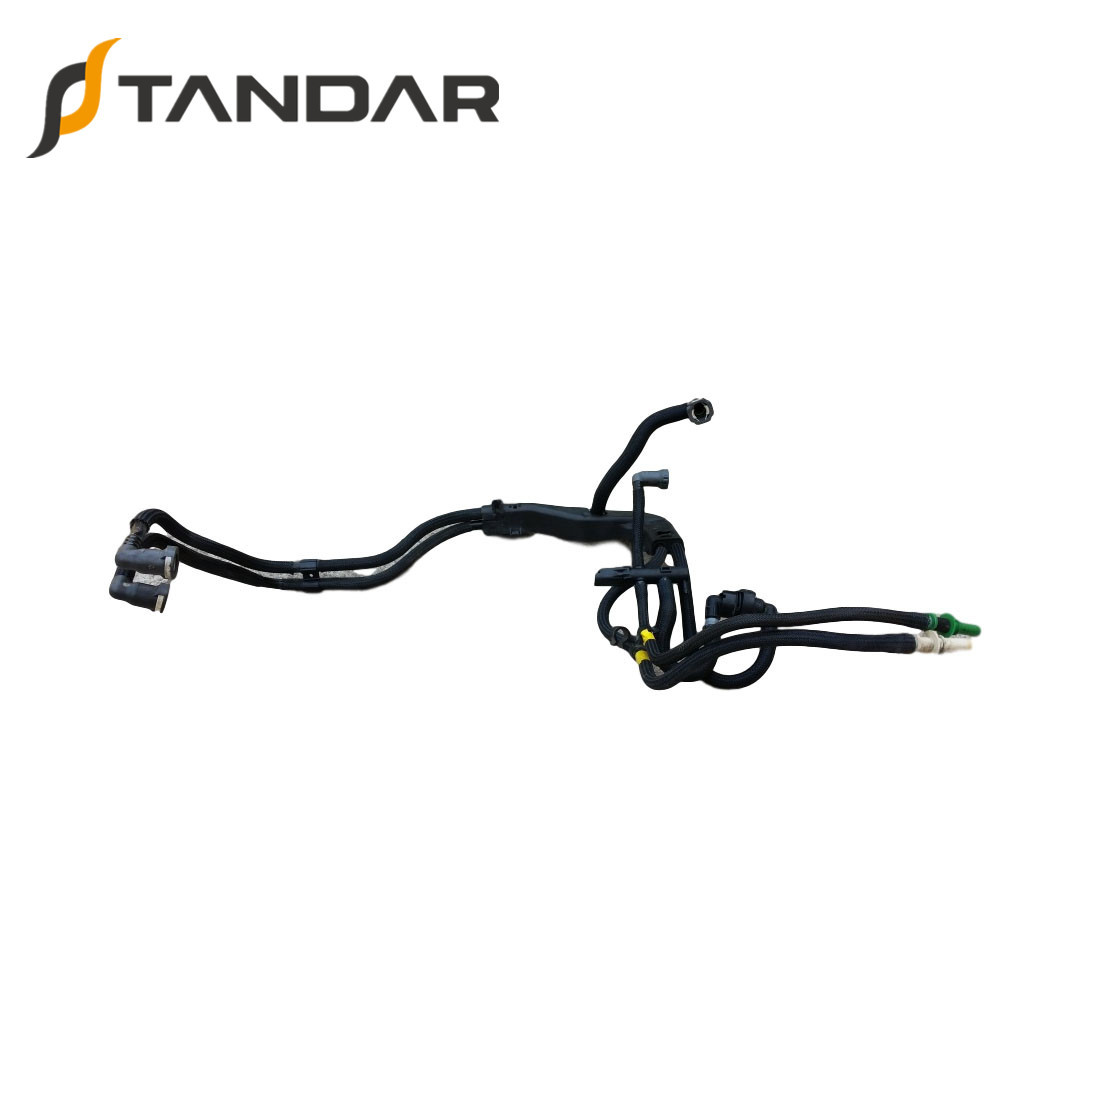 5M5Q9D350AB Fuel Feed Pipe Line Harness For Ford Focus 1.6 TDCI